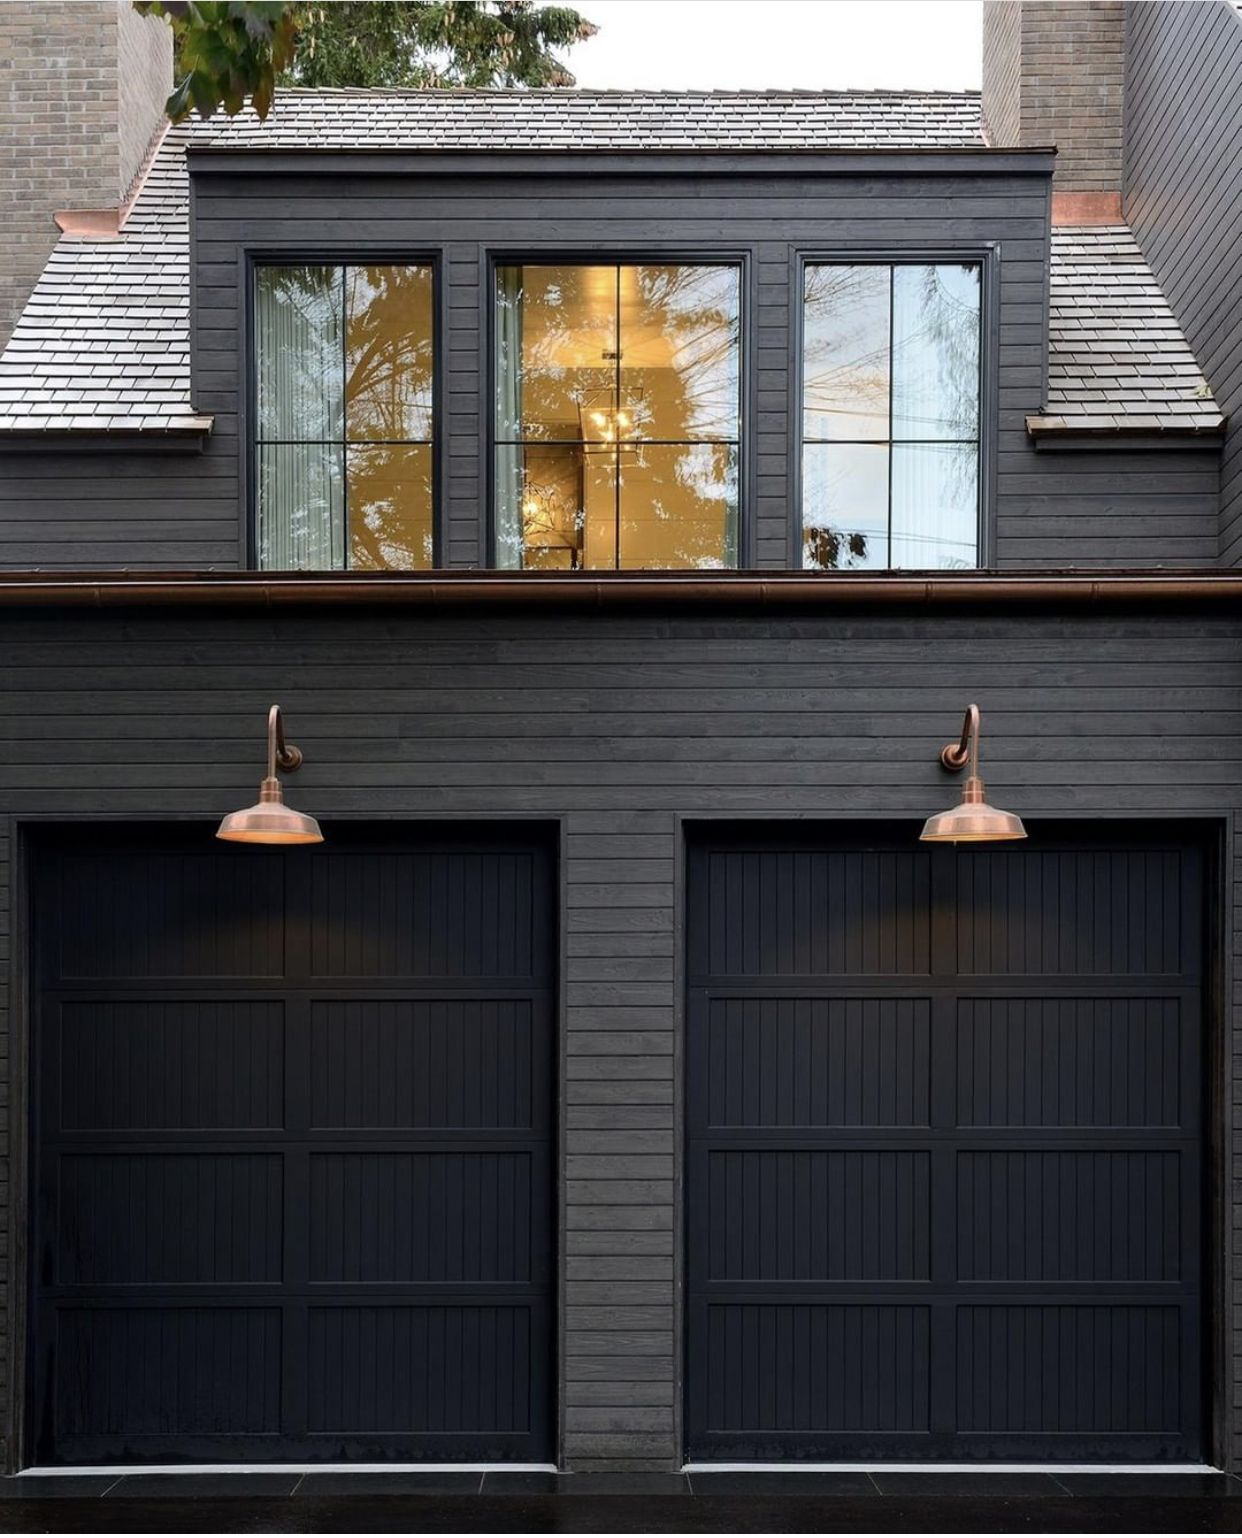 Pin By Tessa Hills On House Home House Exterior Exterior House Colors Black House Exterior